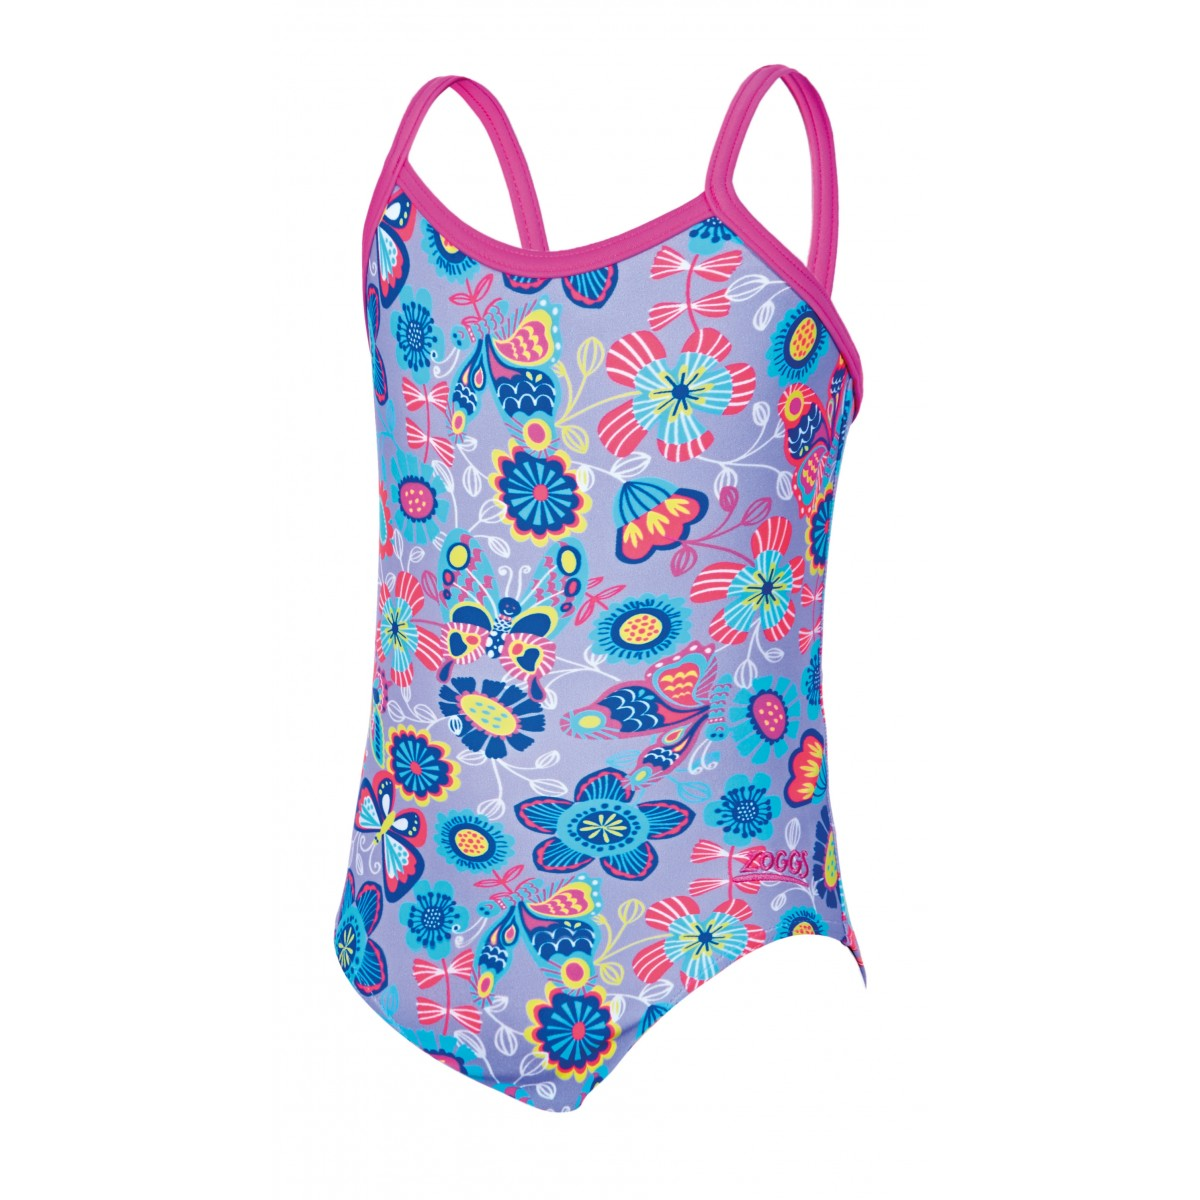 Zoggs Girls Wild Yaroomba Floral Swimsuit